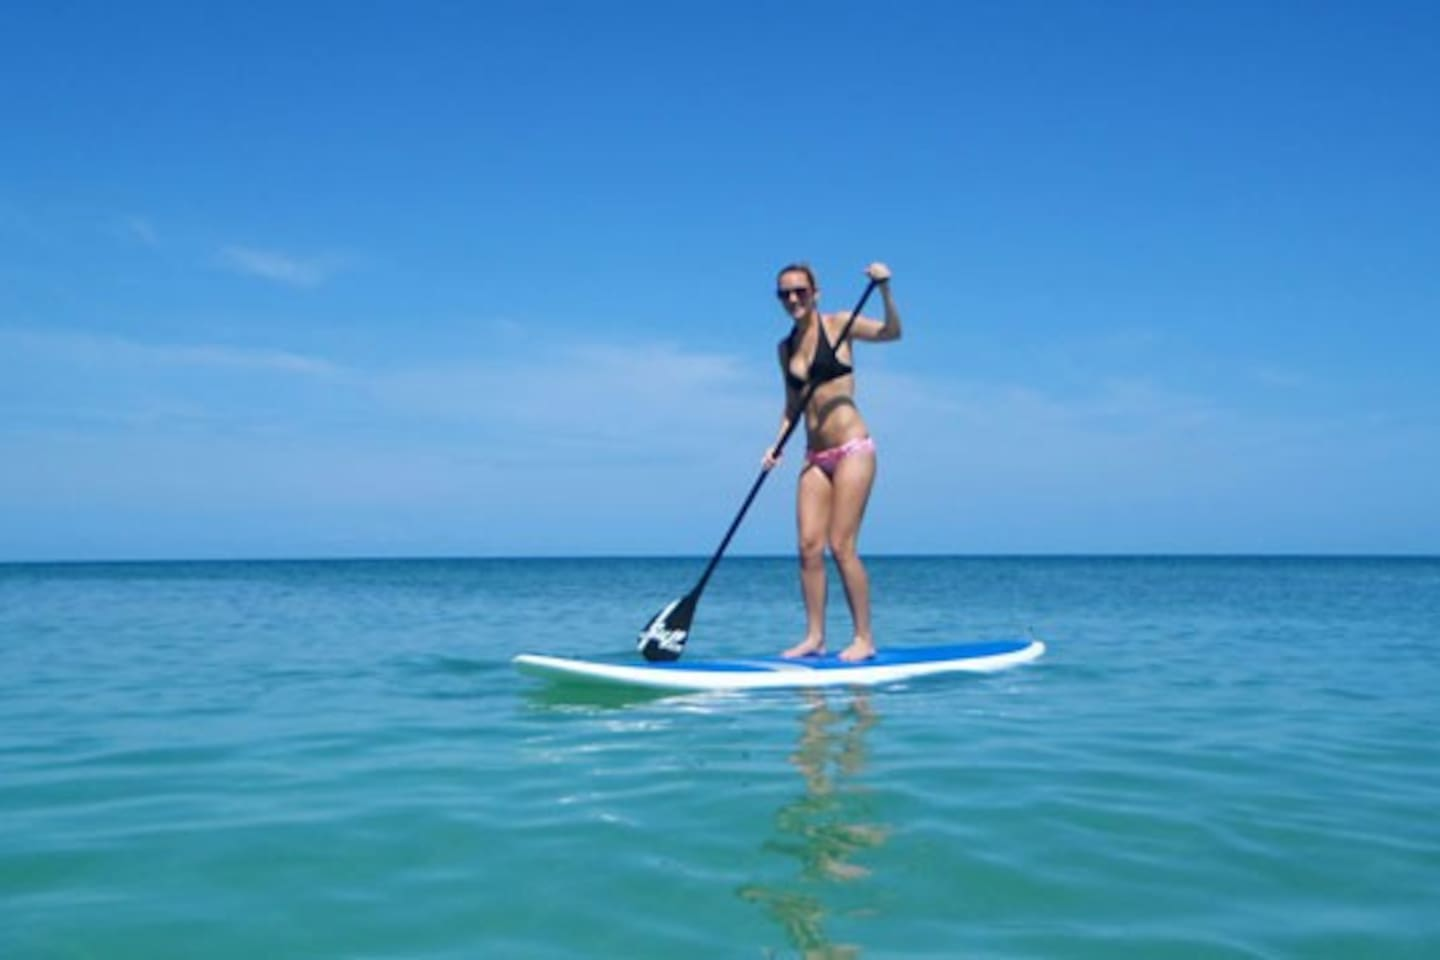 Paddle Boarding the Gulf - rentals nearby